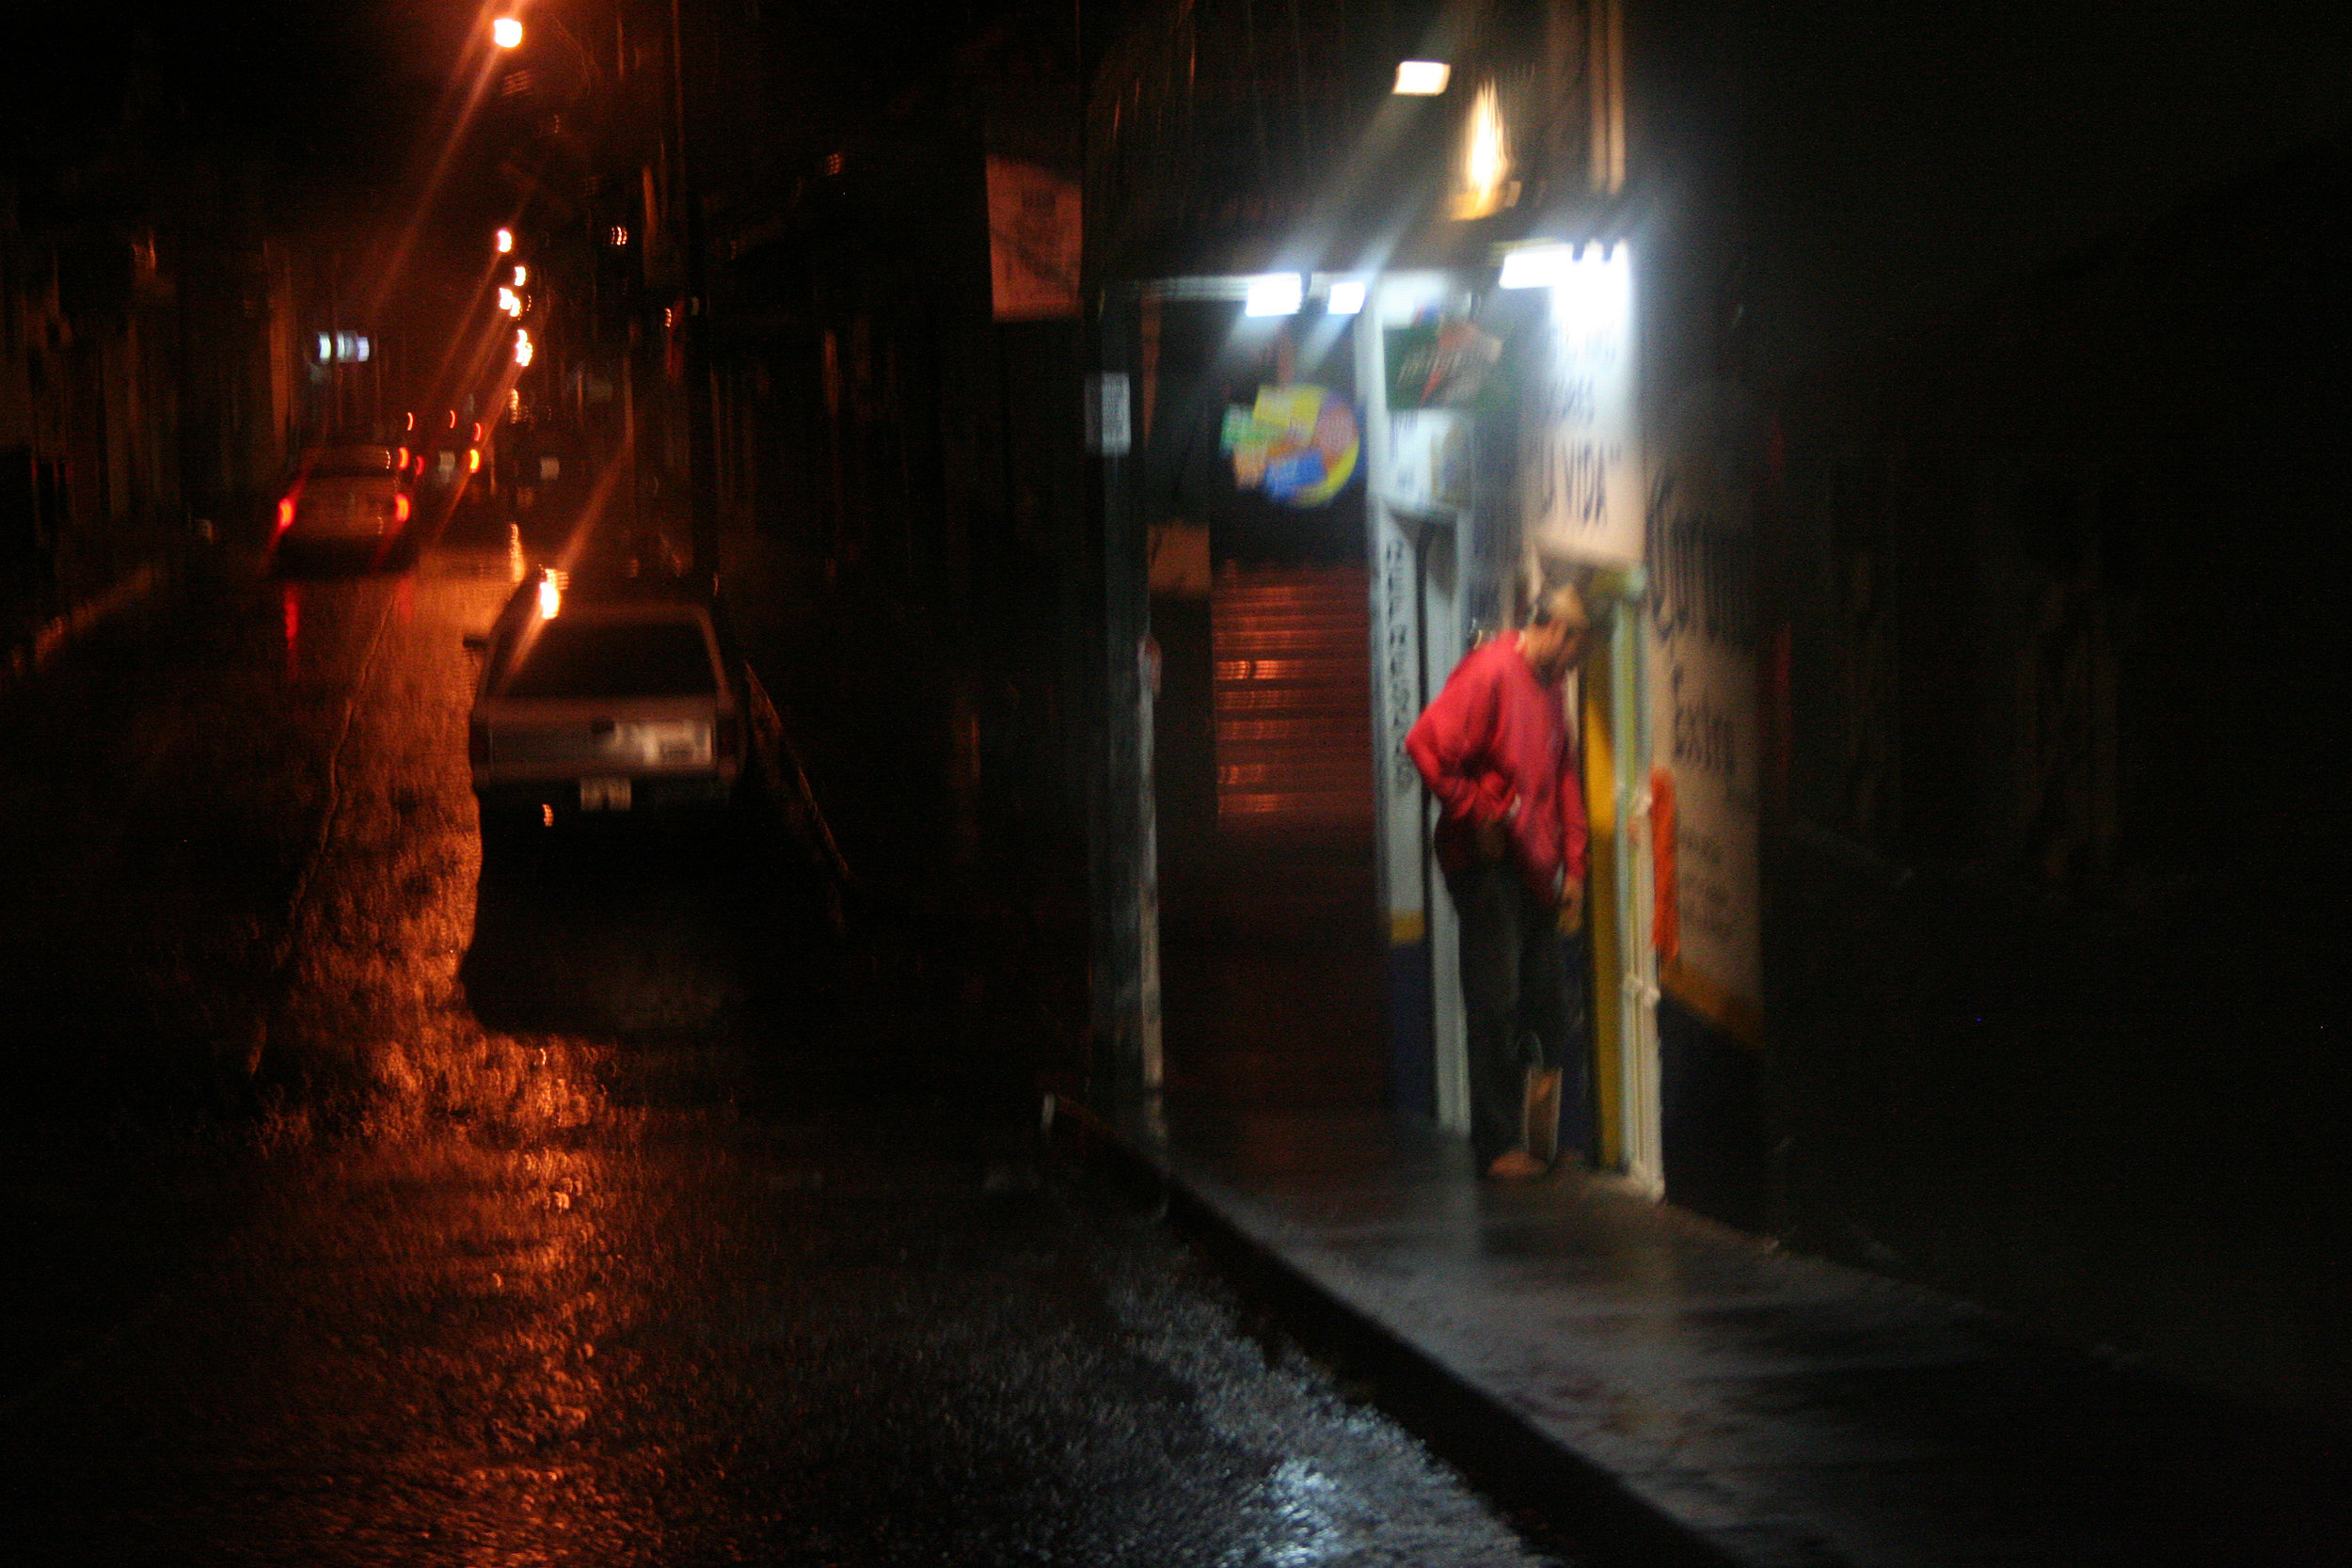 The hard streets of Uruapan in Michoacán State.